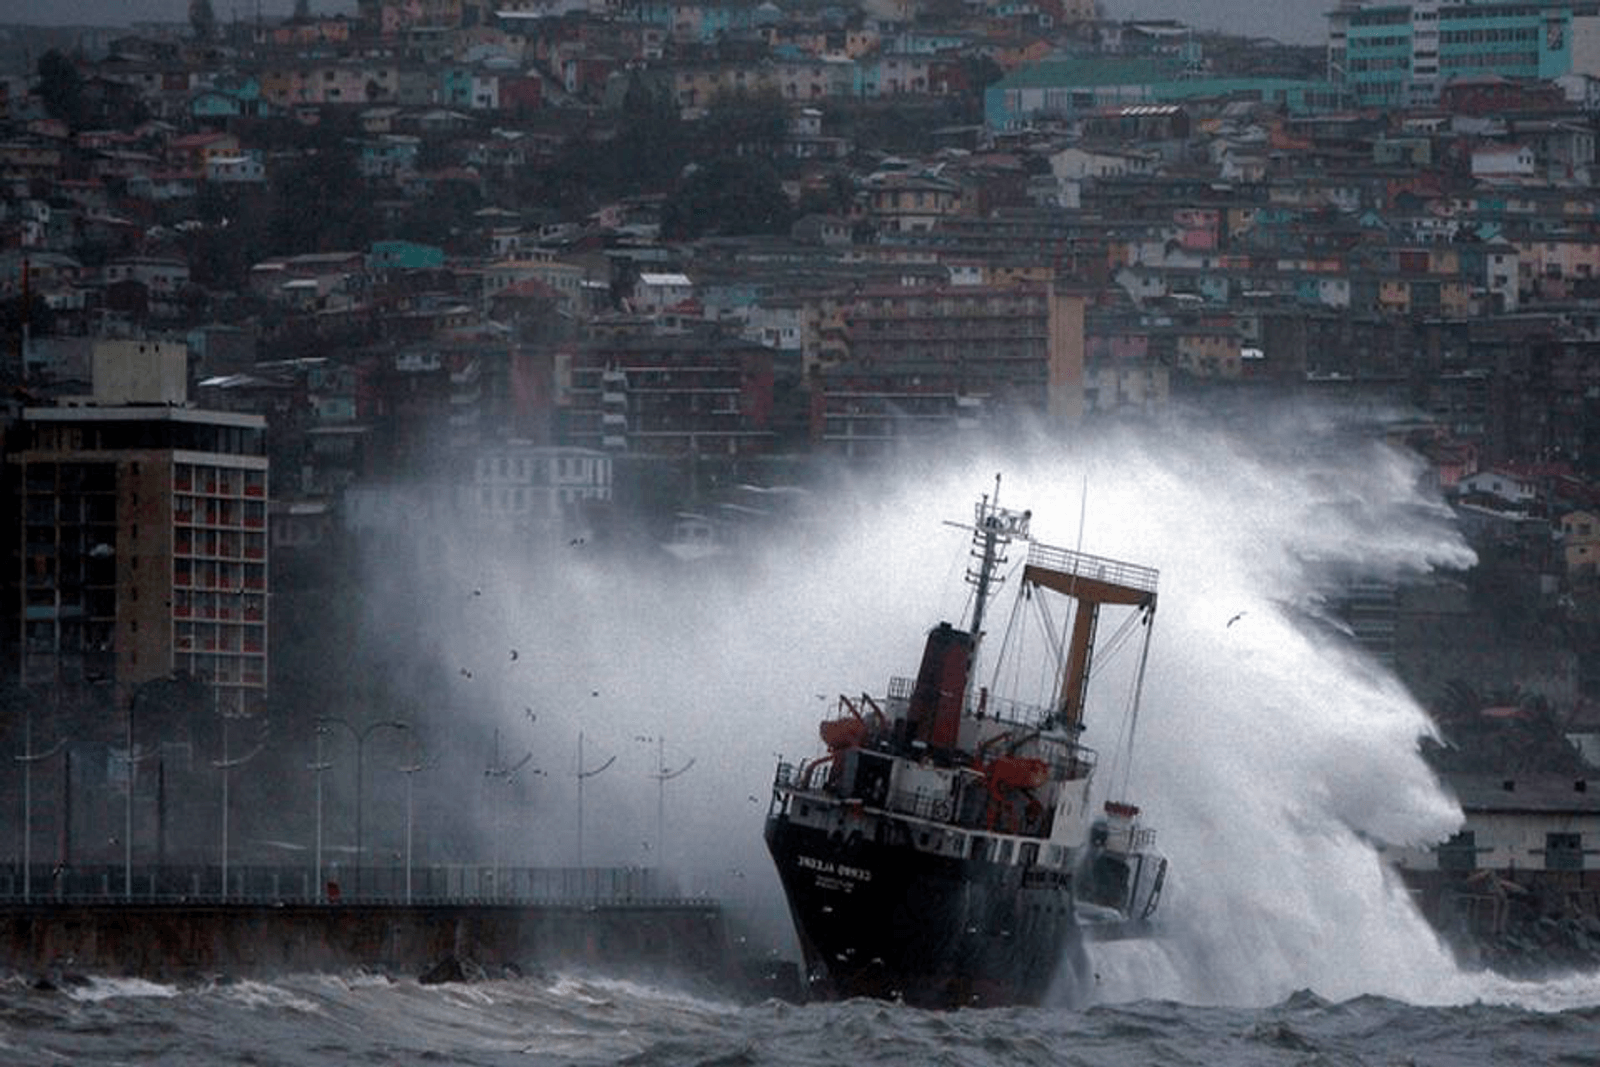 Extreme weather has become a real risk factor for shipping